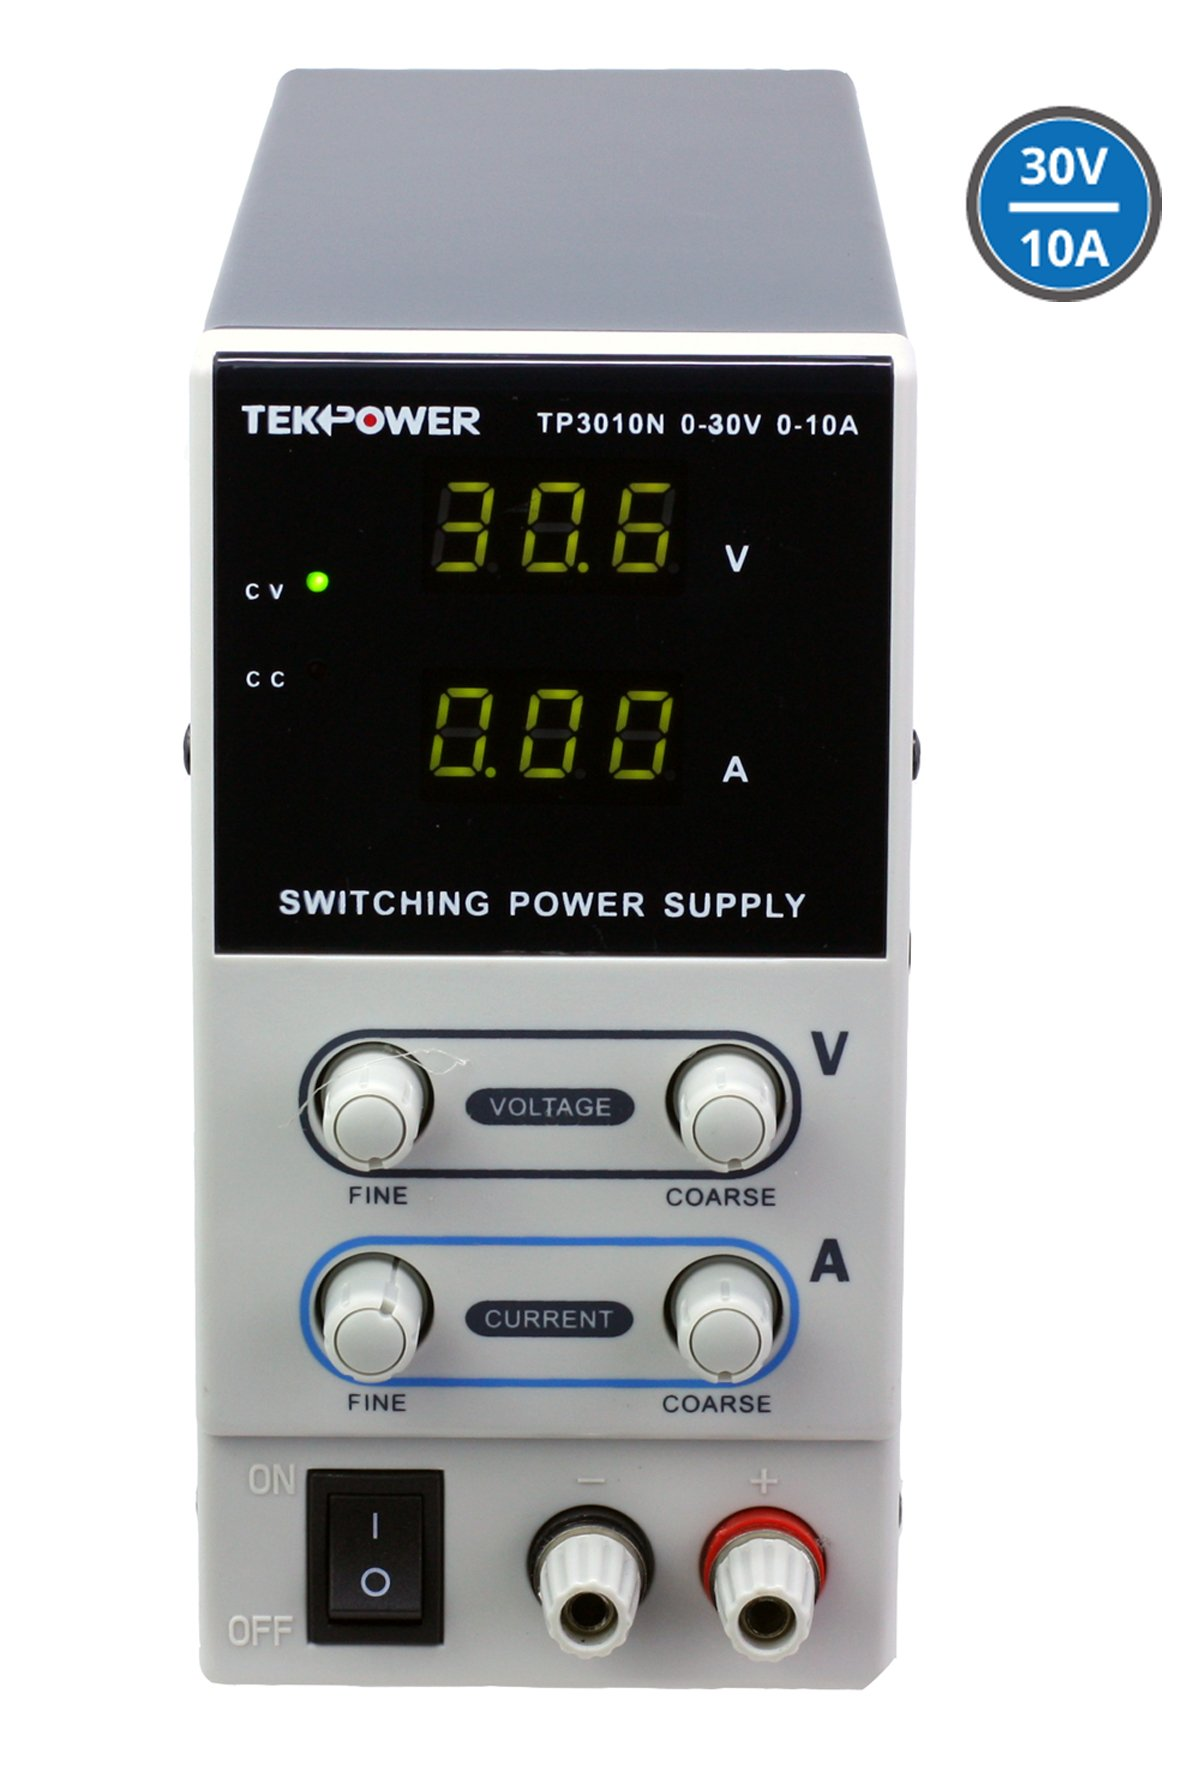 Tekpower TP3010N Regulated DC Variable Power Supply, 0-30V at 0-10A